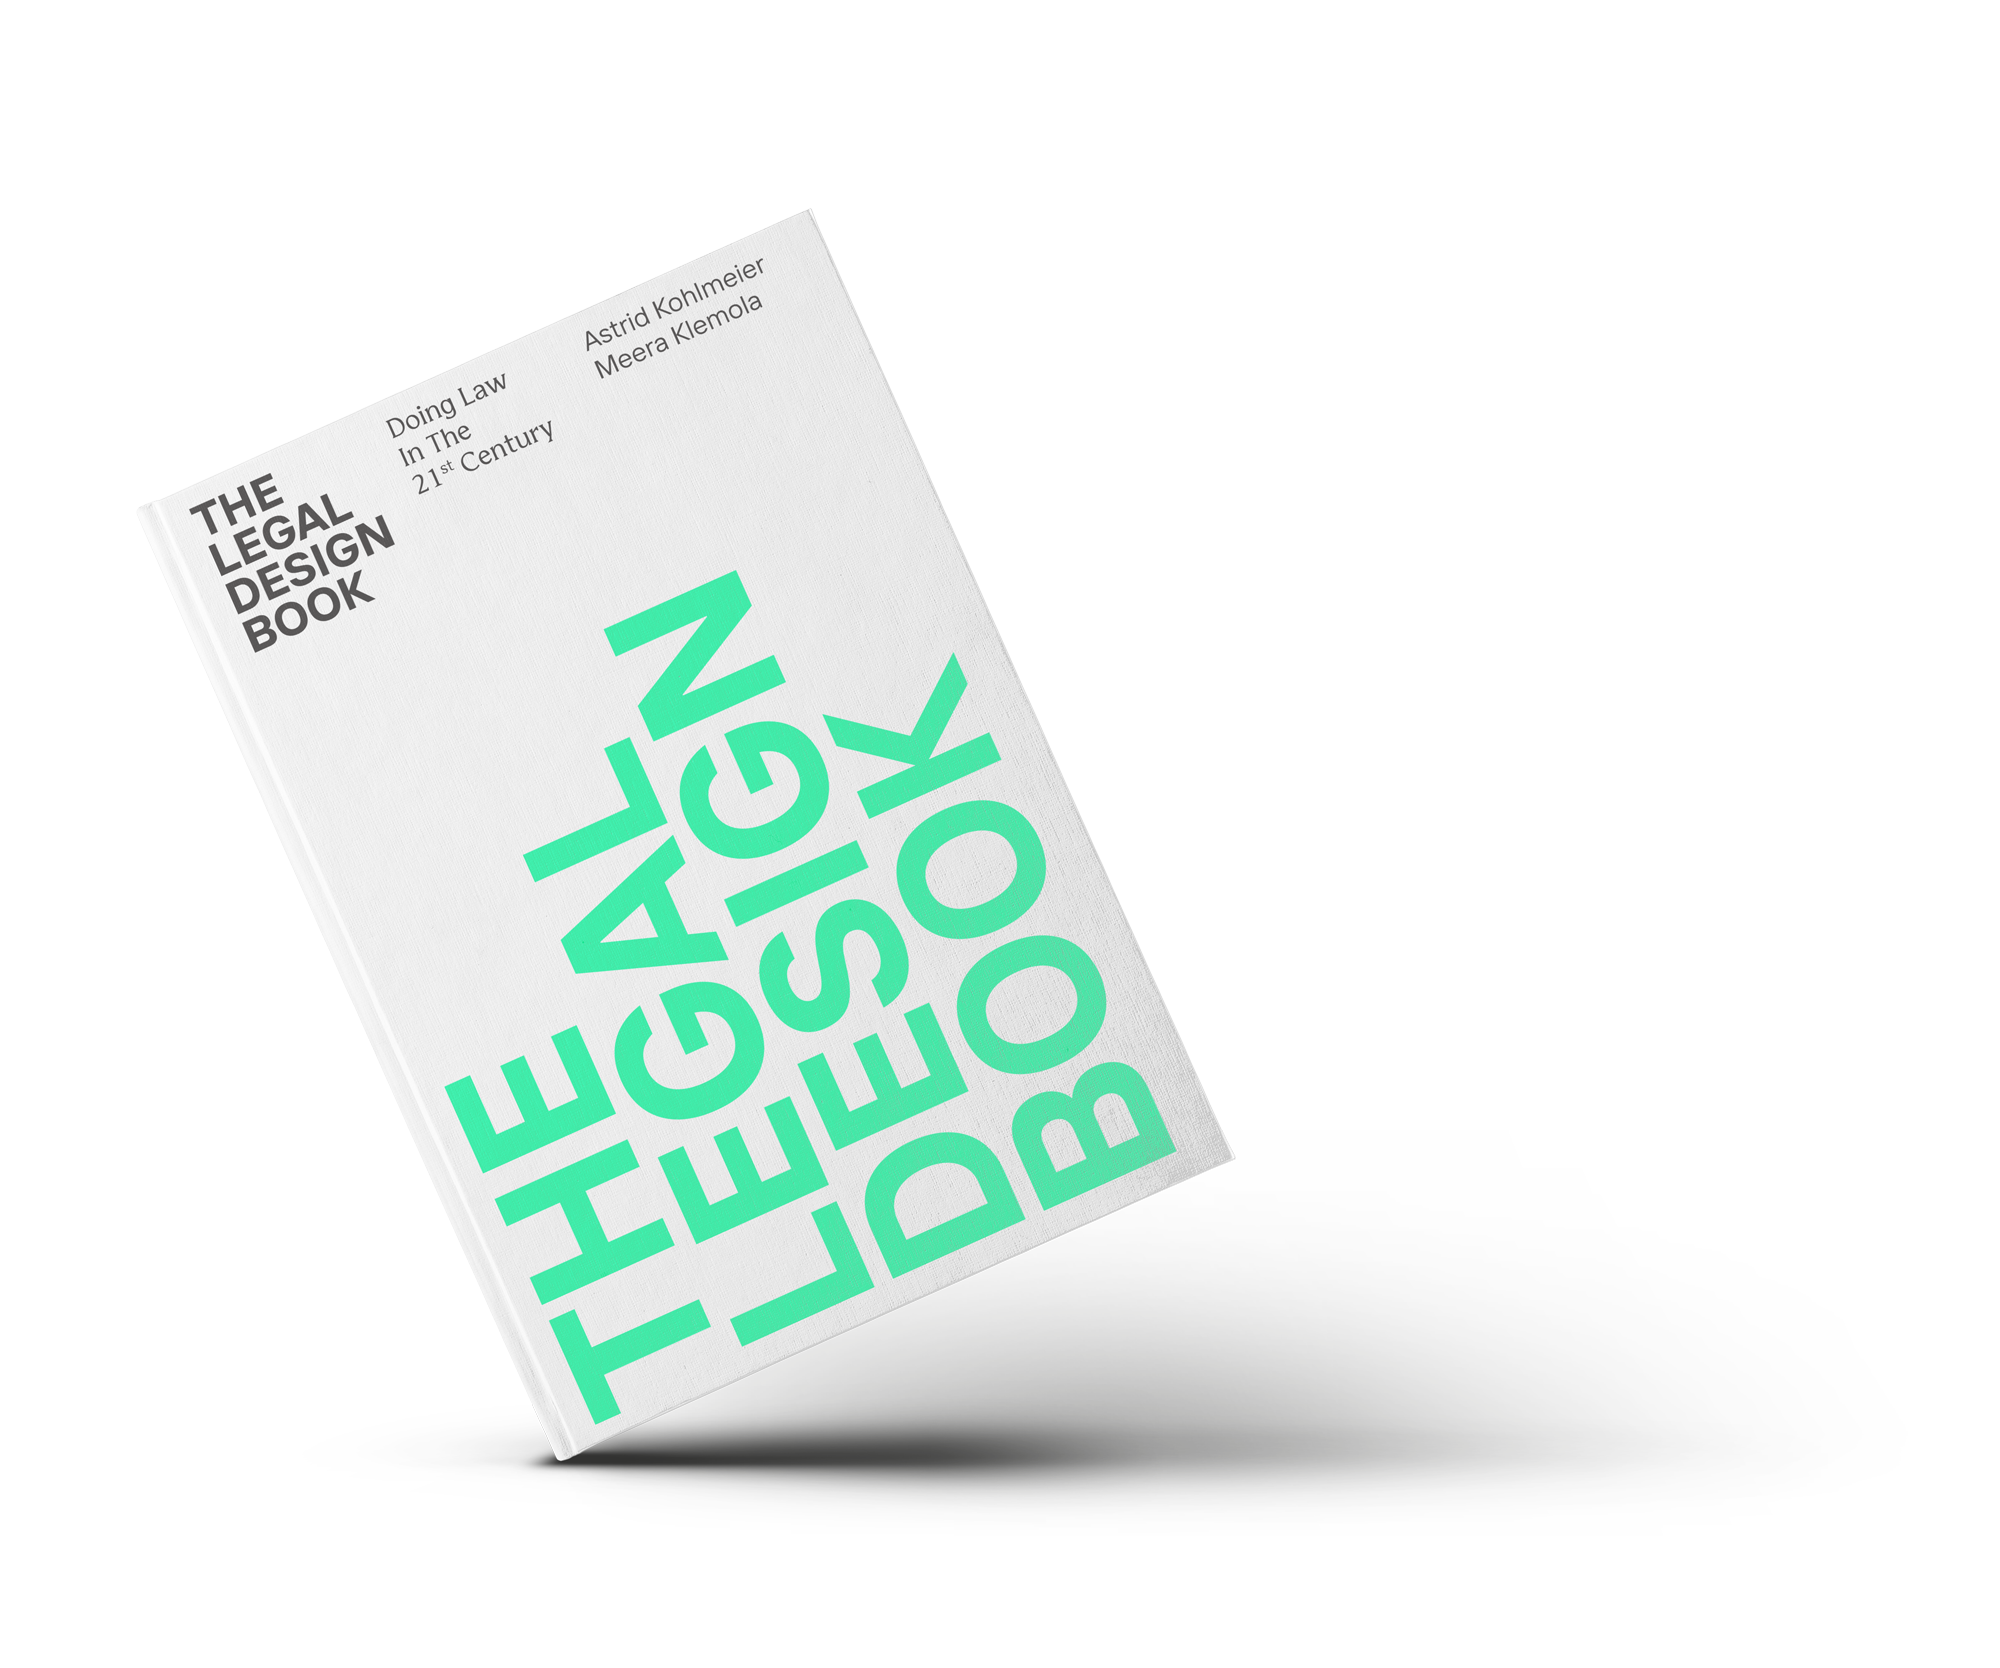 The Legal Design Book secondary cover teaser image